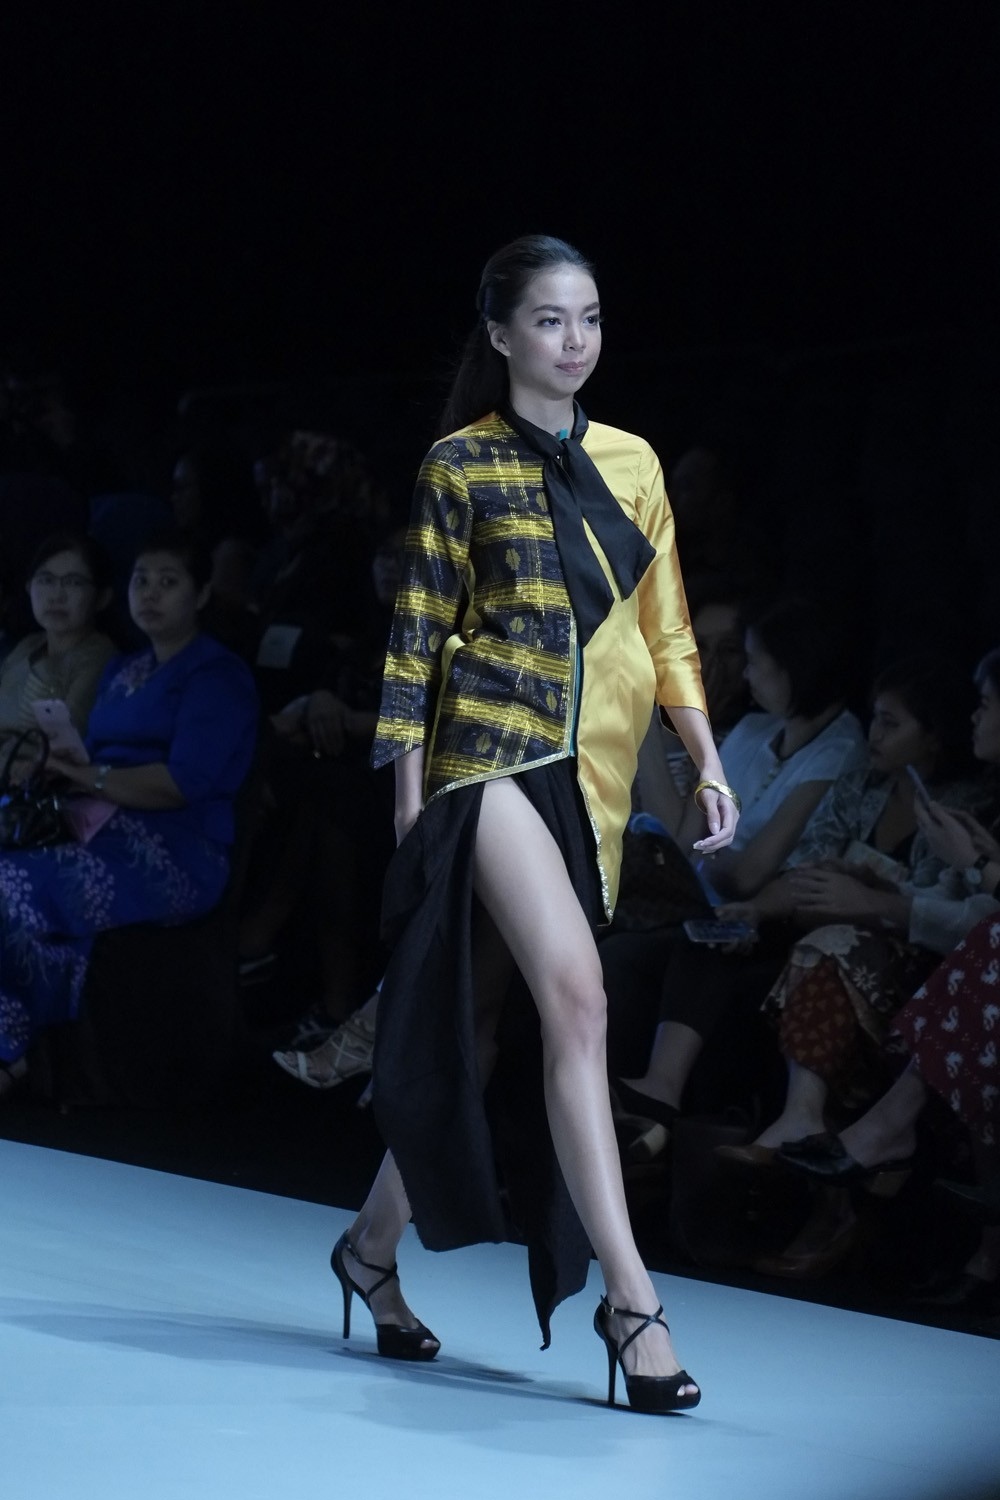 A model wears clothing from the collection of designer Amir Malik. (JP/Jerry Adiguna).